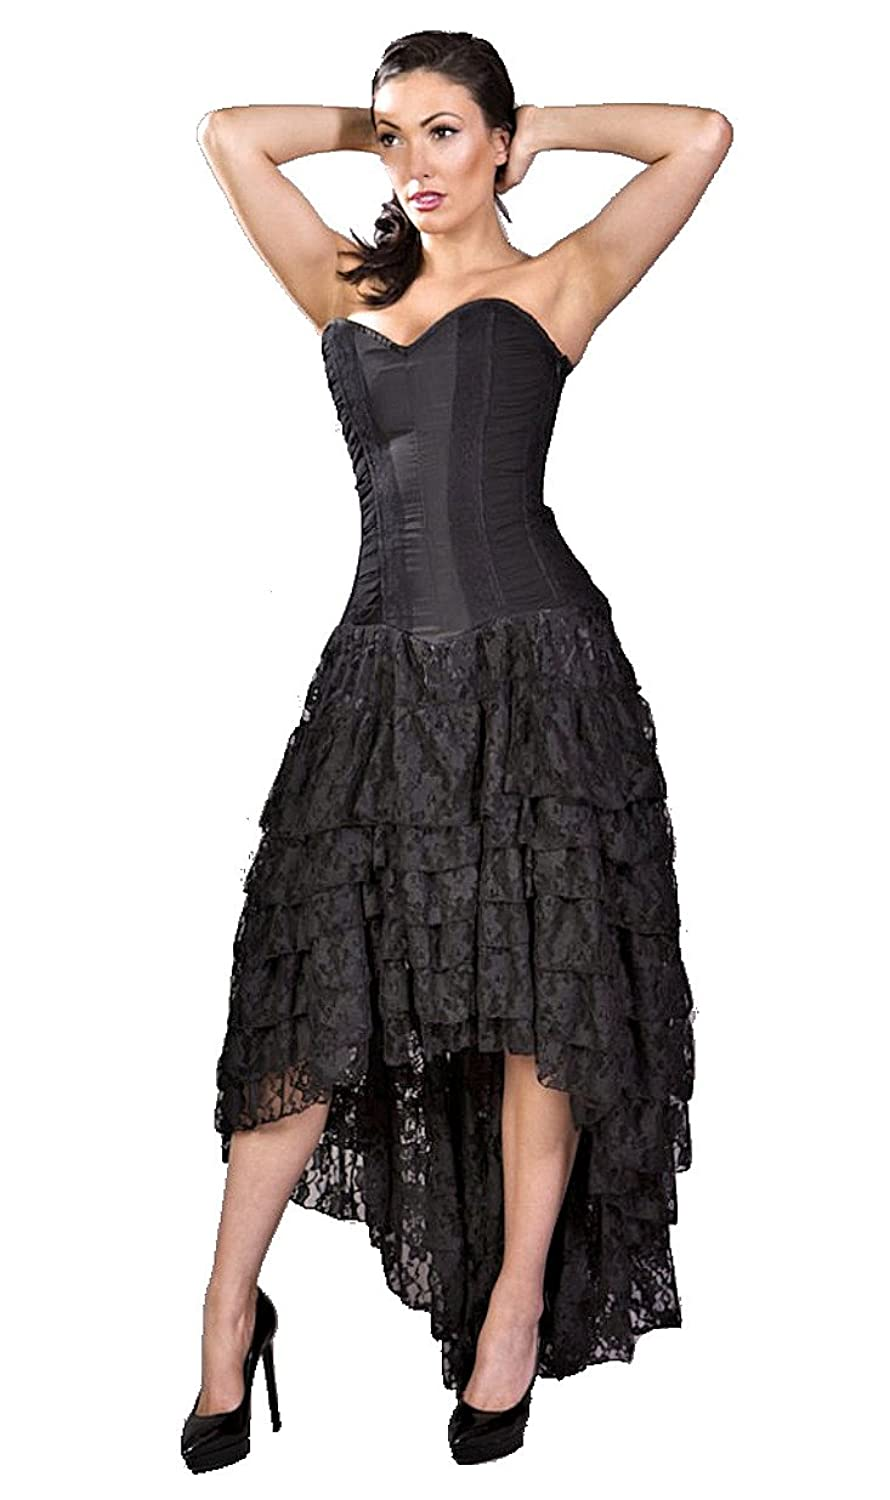 Steampunk Dresses and Costumes Helena Steampunk Corset Dress $159.99 AT vintagedancer.com